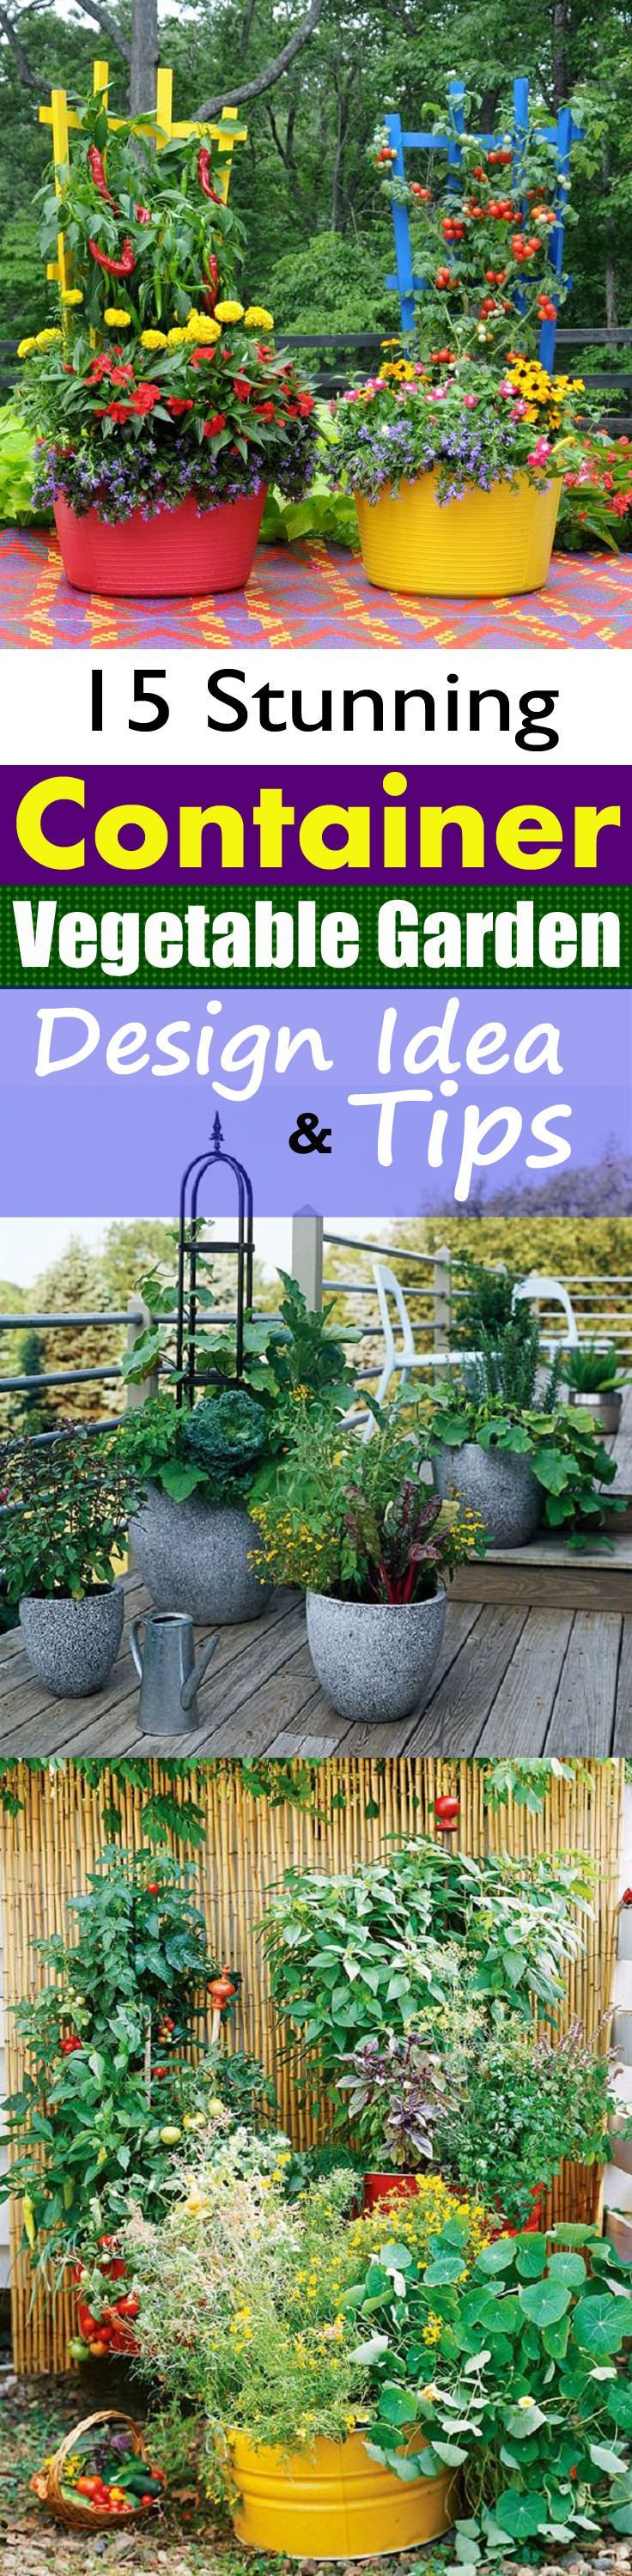 Vegetable garden design   Stunning Container Vegetable Garden Design Ideas u Tips  Green